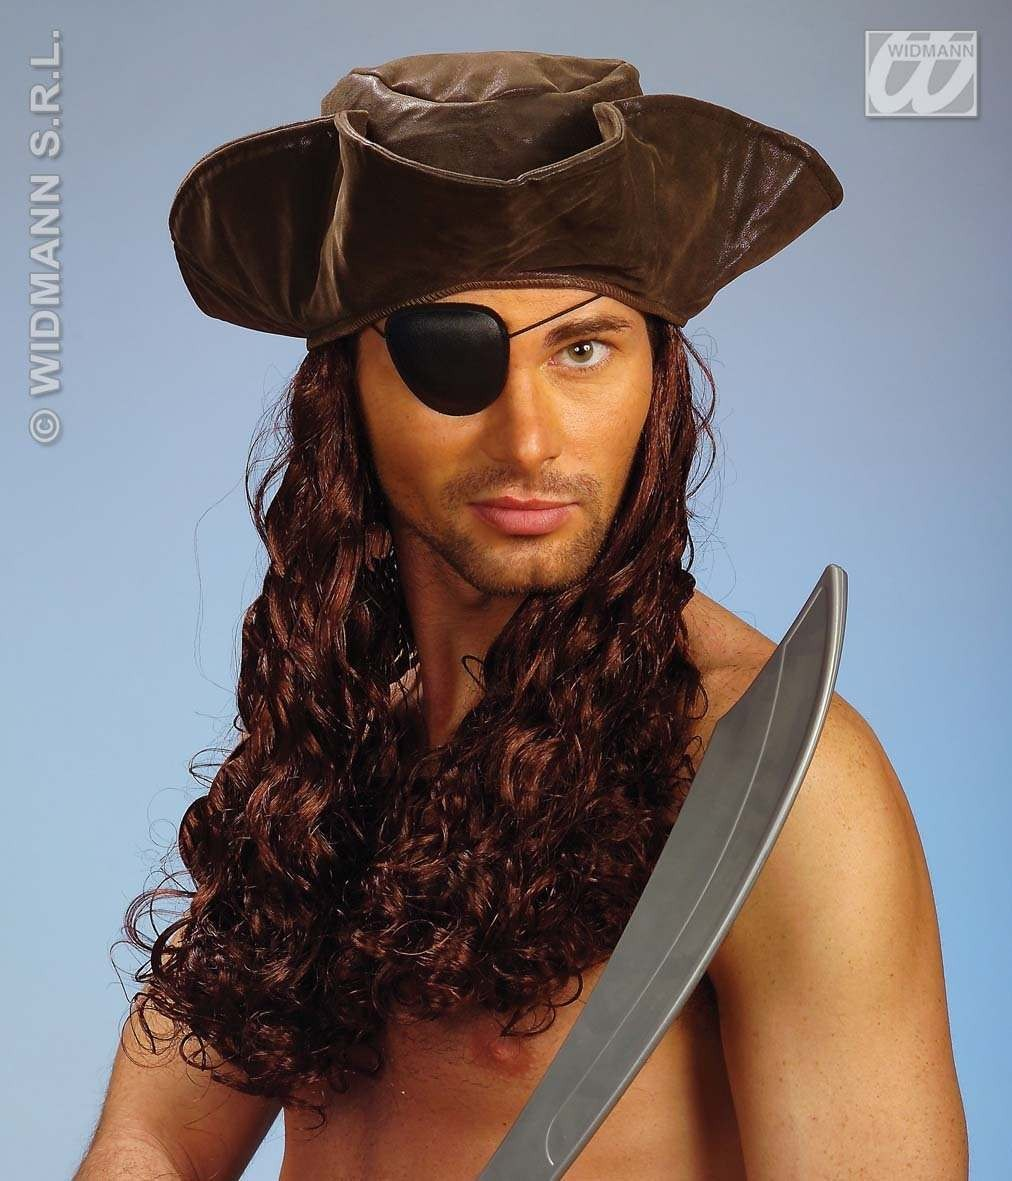 Leatherlook Pirate Tricorn/Wig - Fancy Dress (Pirates)